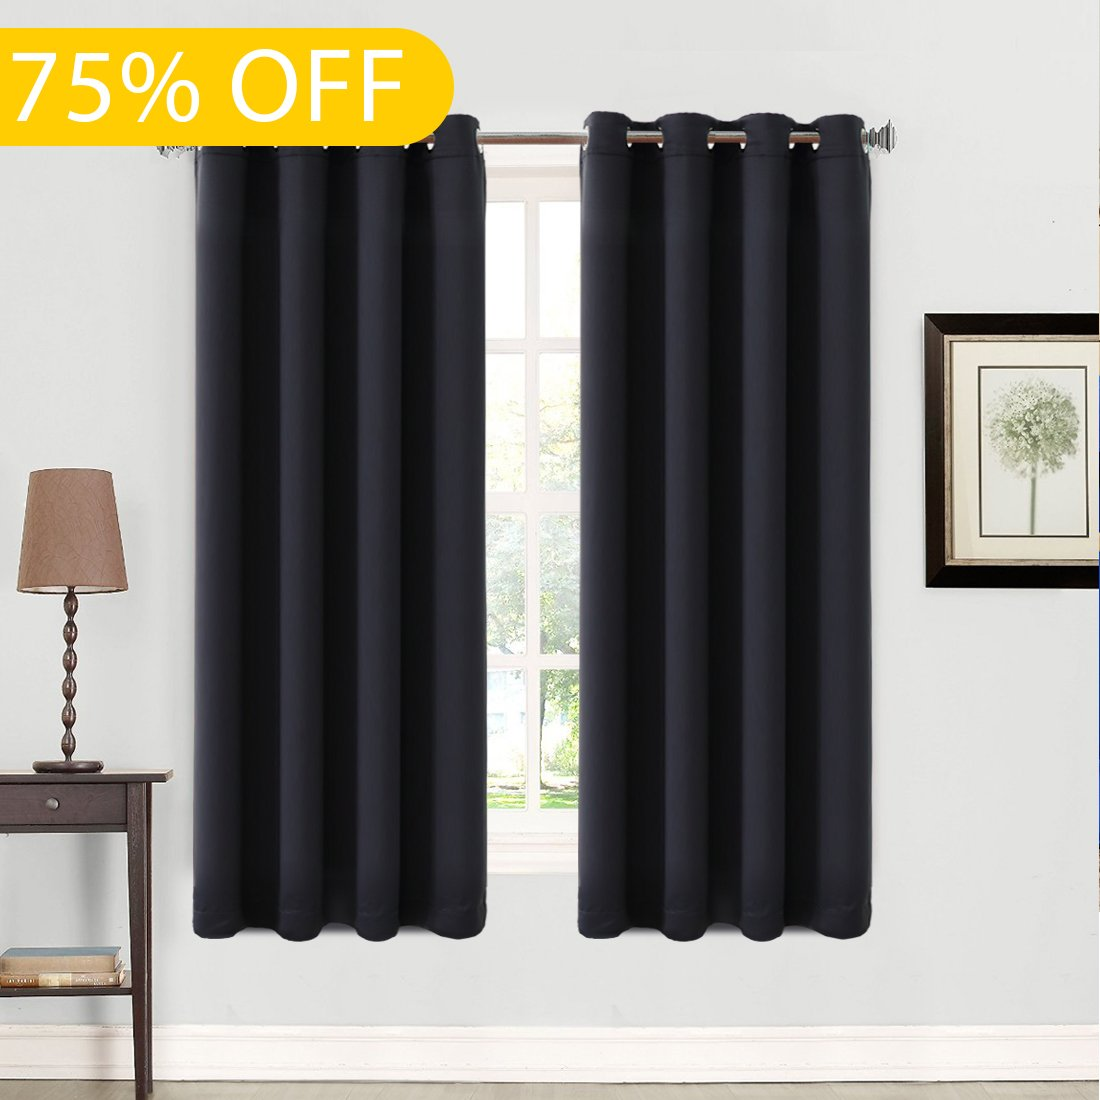 Balichun 99% Blackout 2 Panels Curtains Thermal Insulated Grommets Drapes for Bedroom Black